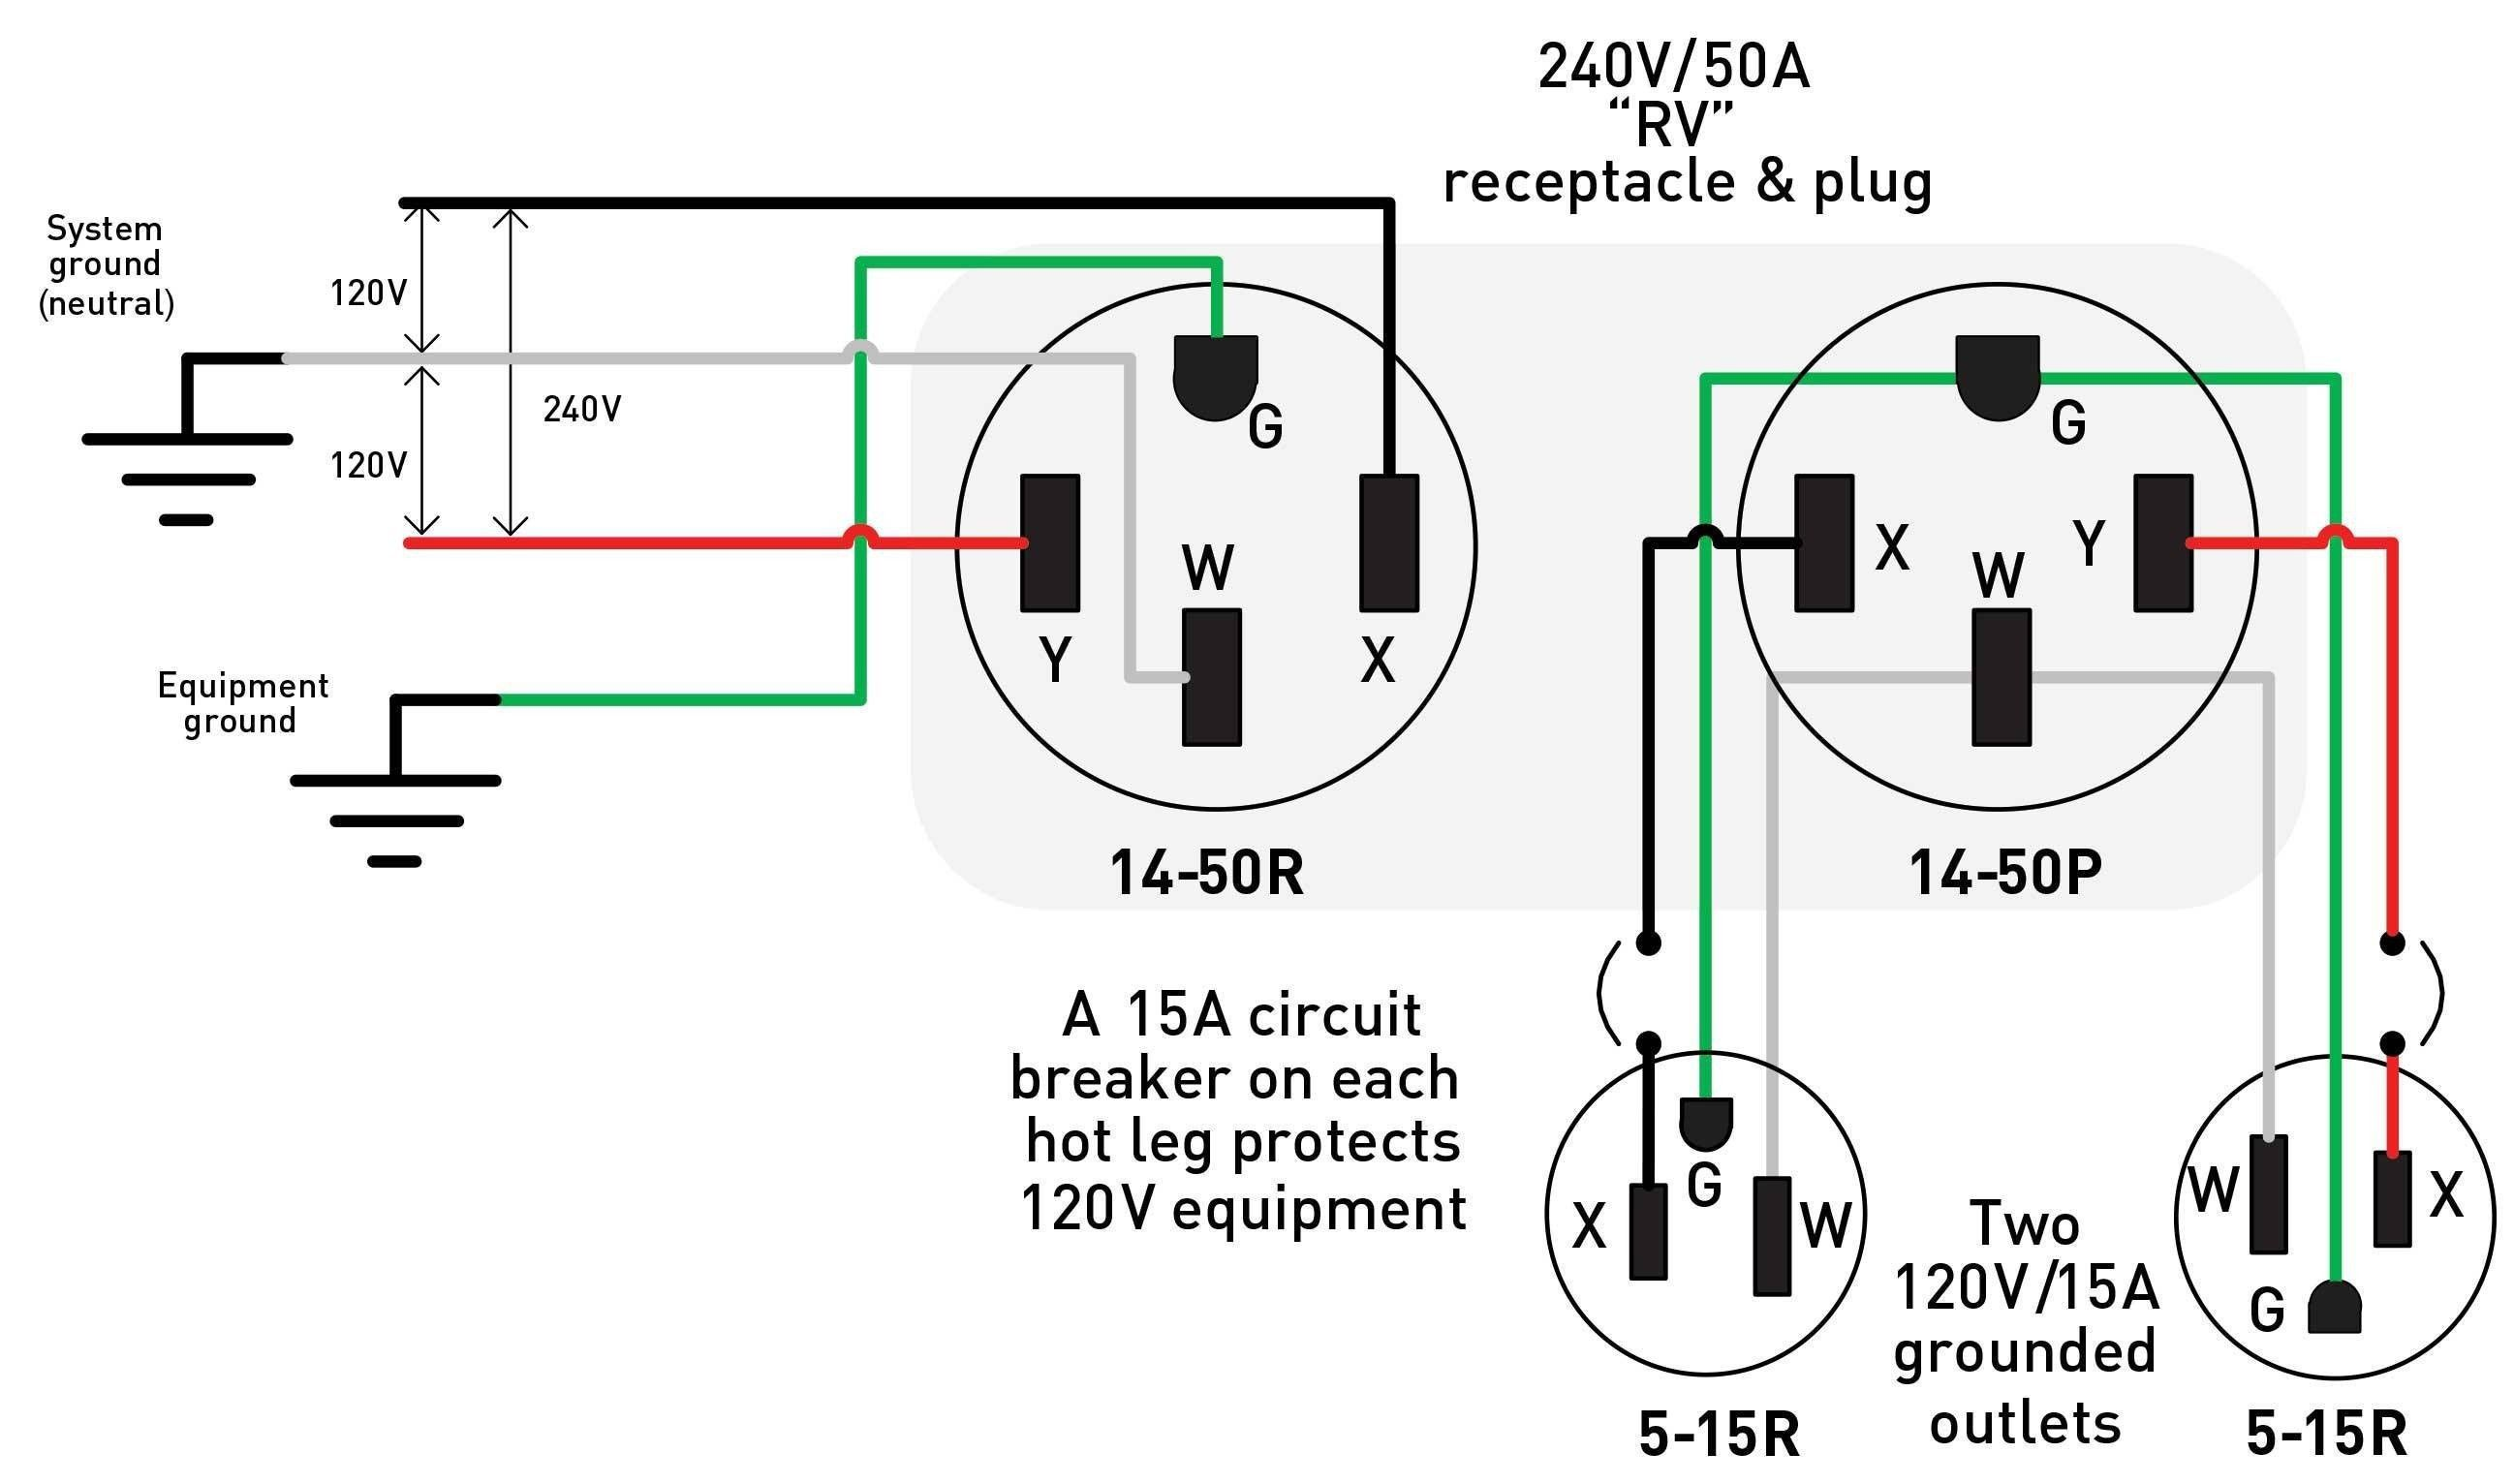 Unique Simple Wiring Diagram Diagram Wiringdiagram Diagramming Diagramm Visuals Visualisation Graphical Che Electrical Plug Wiring Outlet Wiring Ac Plug